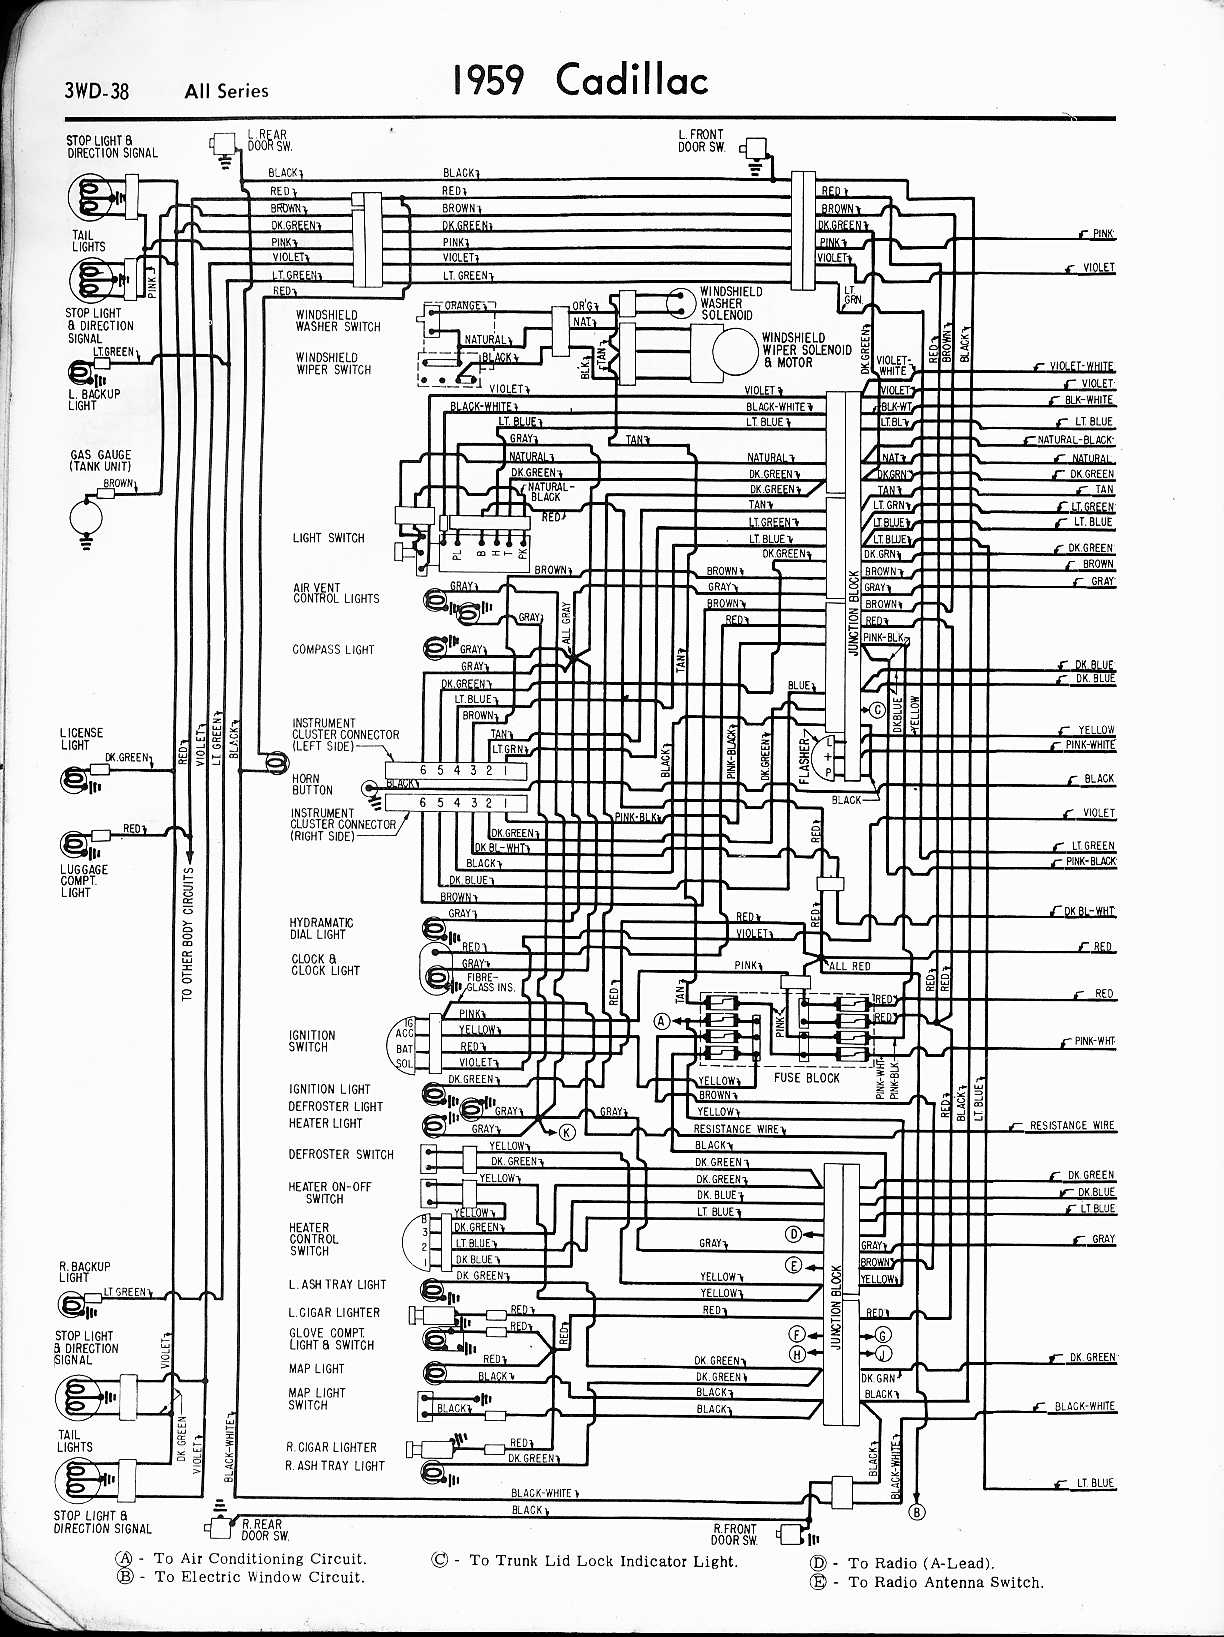 [SCHEMATICS_4NL]  ☑ 1988 Cadillac Wiring Diagrams HD Quality ☑ phase-diagrams.twirlinglucca.it | Cadillac Engine Wiring Diagram |  | Diagram Database - Twirlinglucca.it